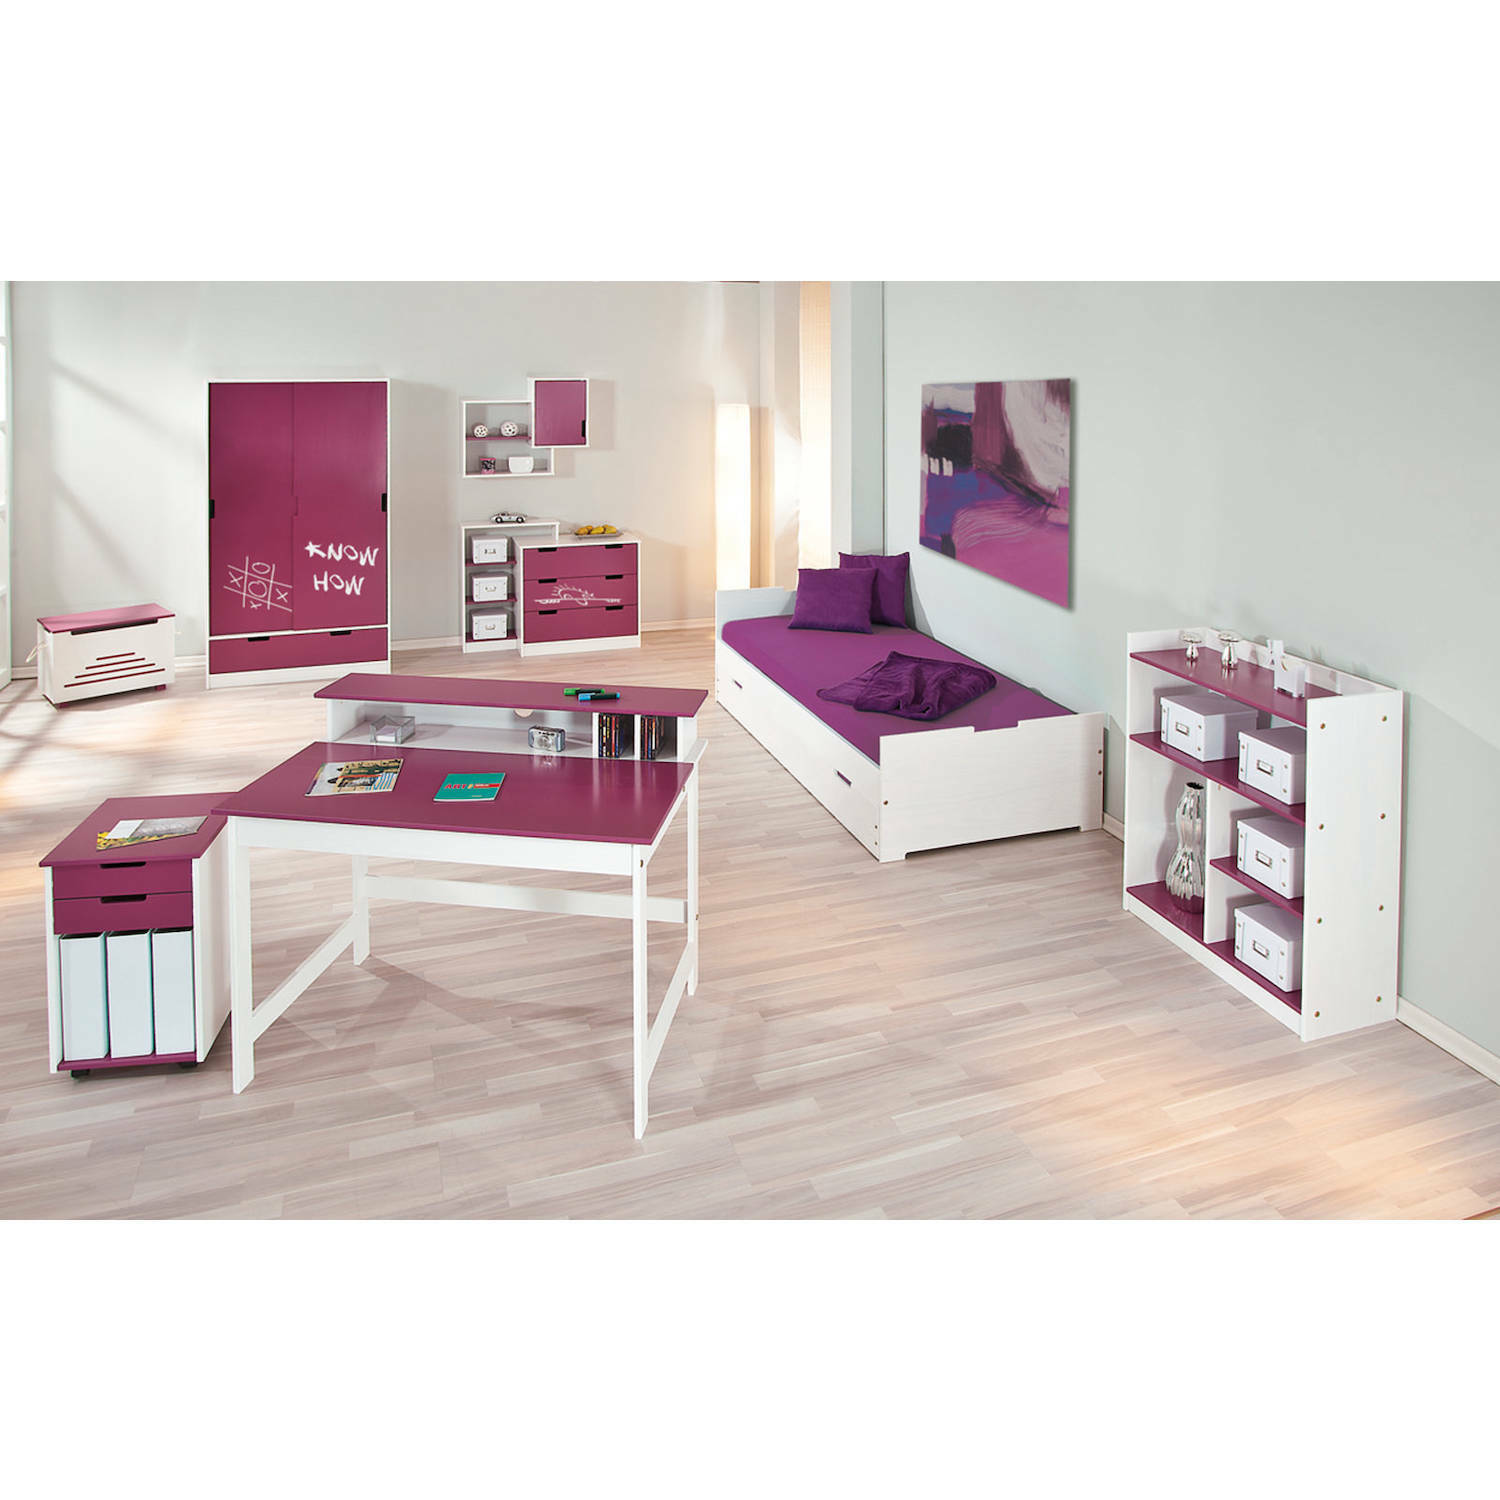 kleiderschrank kinderzimmer kinderschrank schrank kinder 2 t rig schublade lila eur 203 95. Black Bedroom Furniture Sets. Home Design Ideas